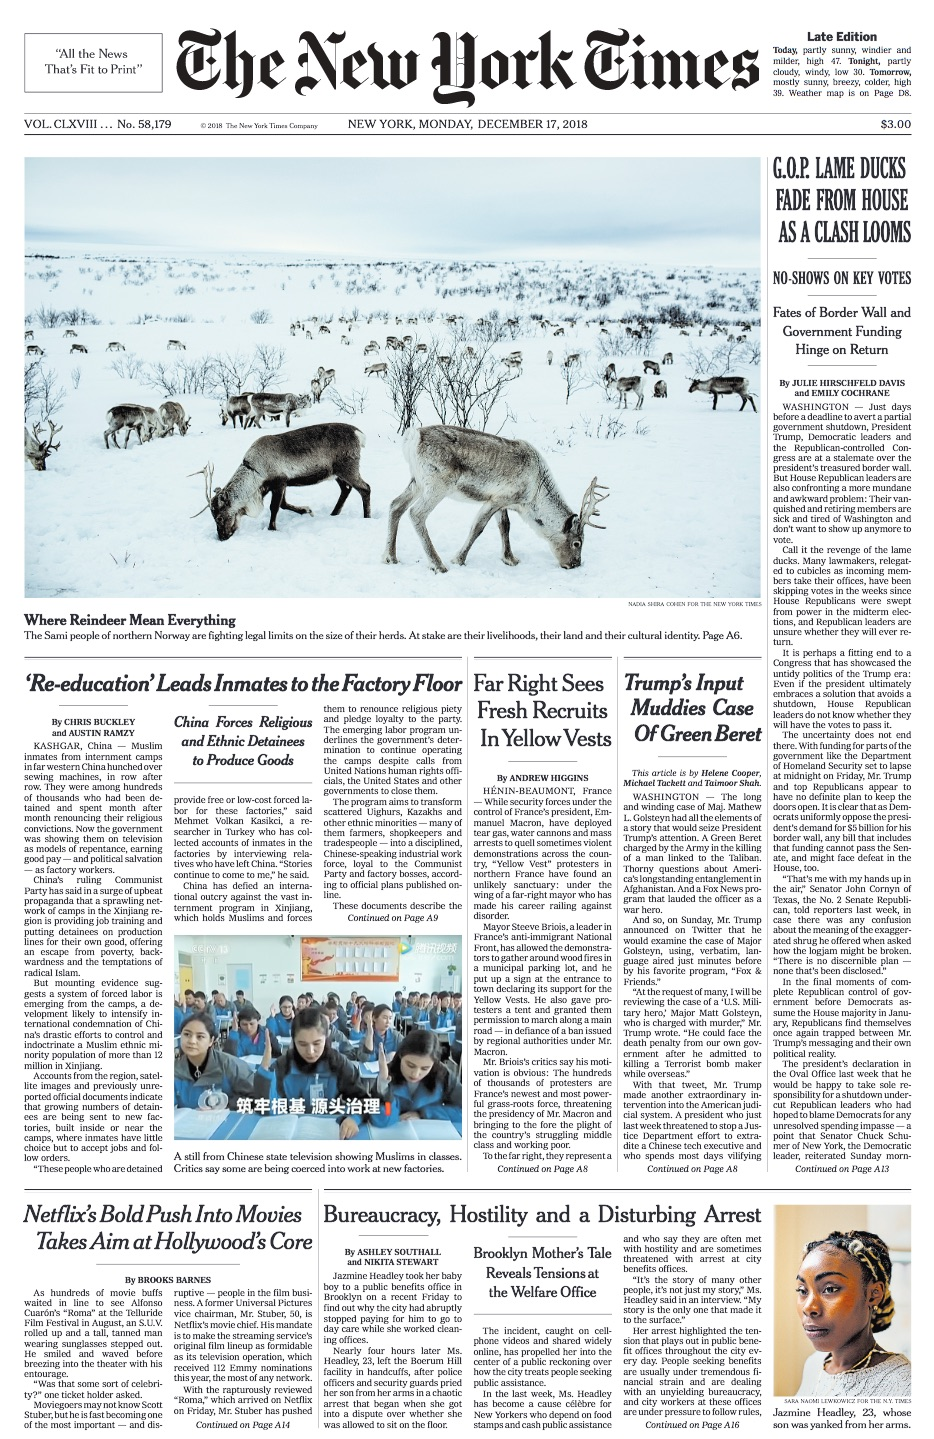 NYT_FrontPage_121718.jpg